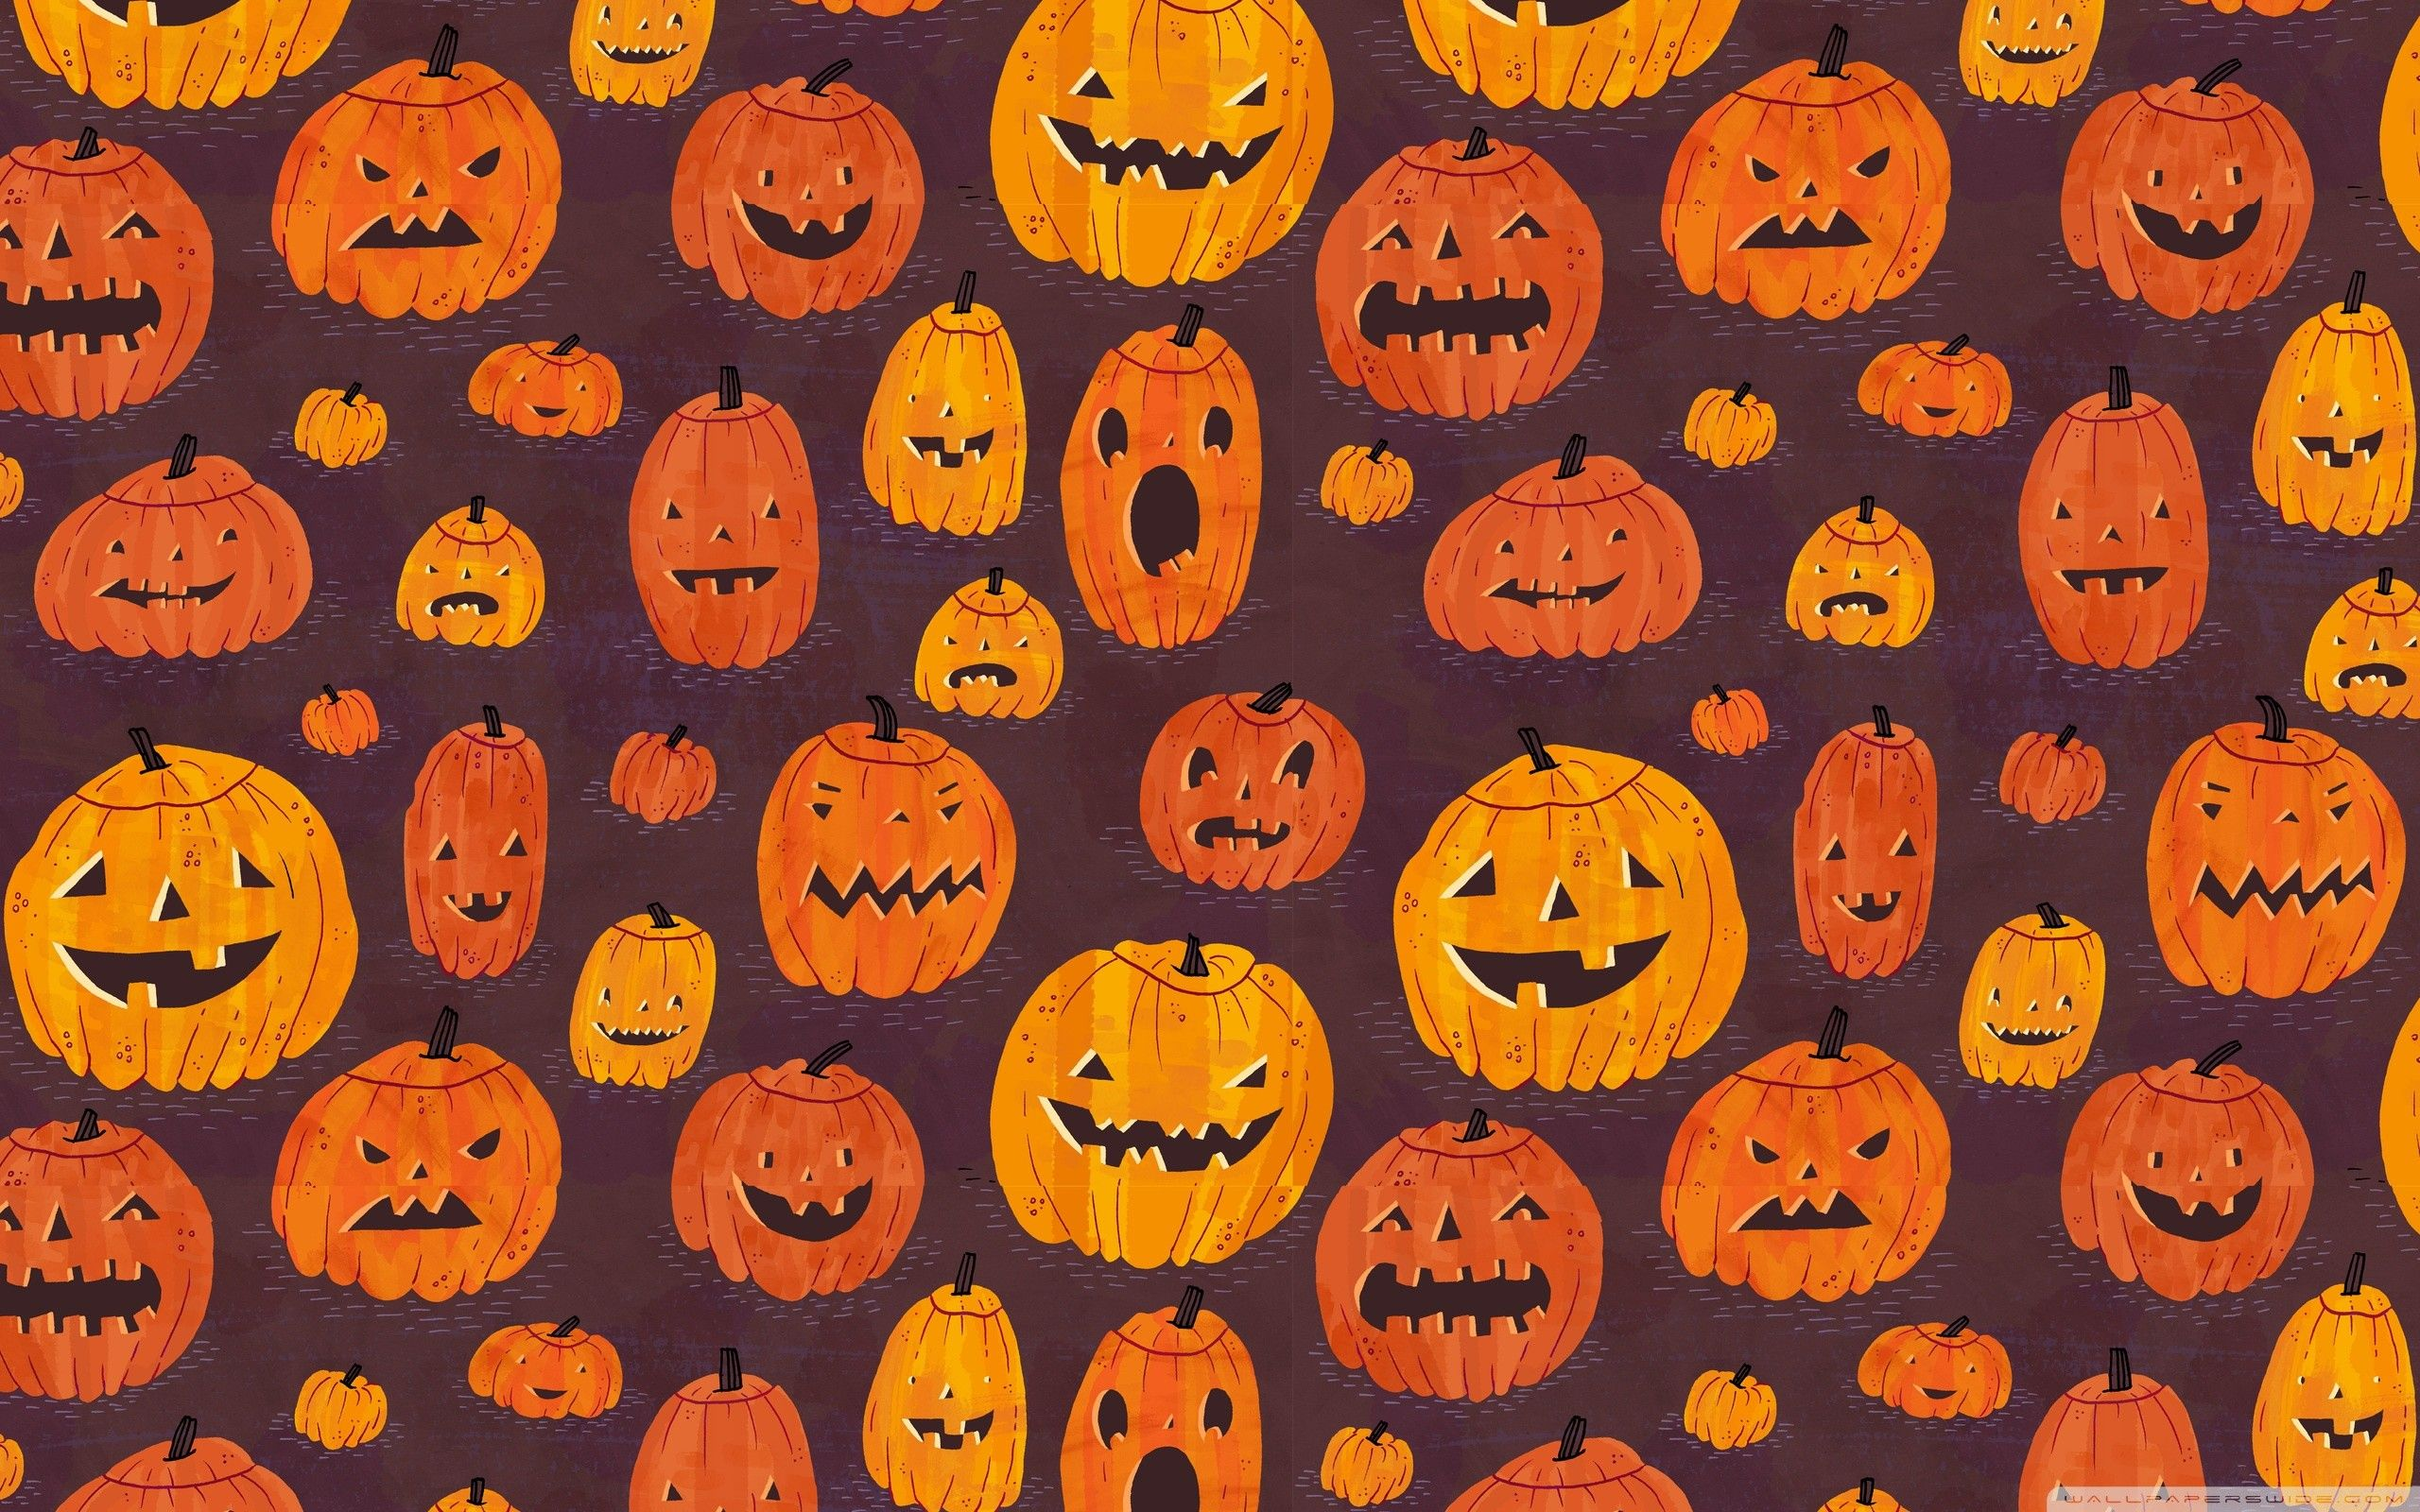 Cute Halloween Desktop Wallpaper 2560x1600 Ipad Pro Pumpkin Wallpaper Halloween Desktop Wallpaper Halloween Background Tumblr